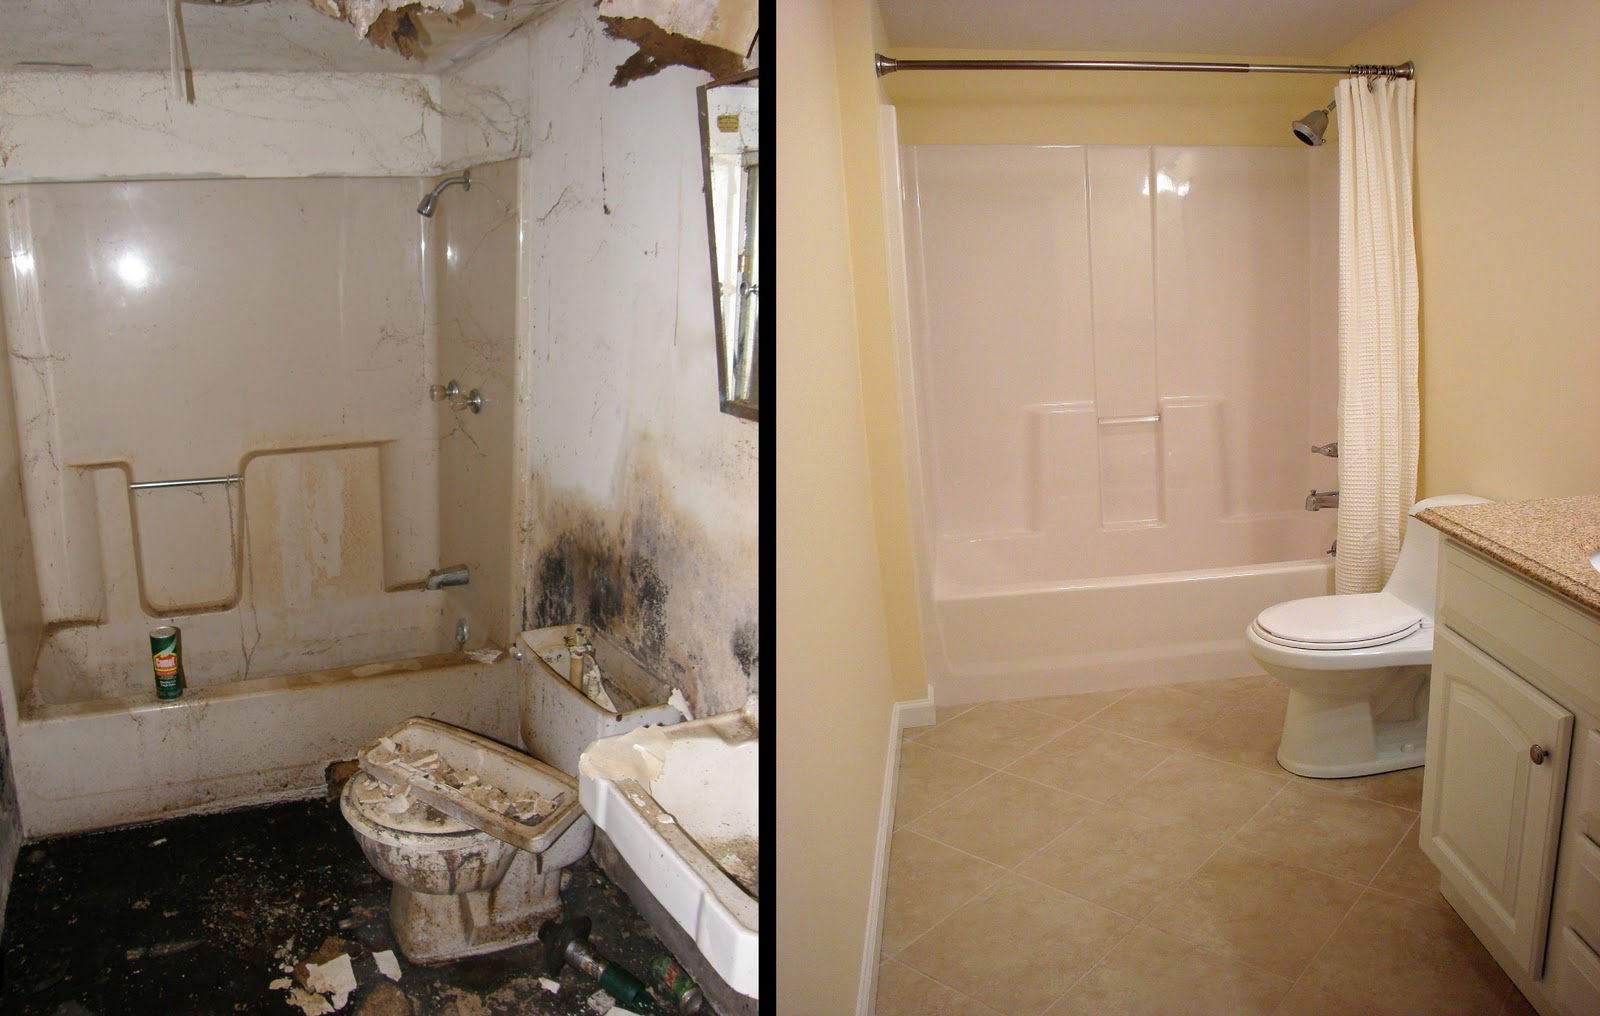 Remodel Bathroom Permit henderson's home improvement llc: bathrooms